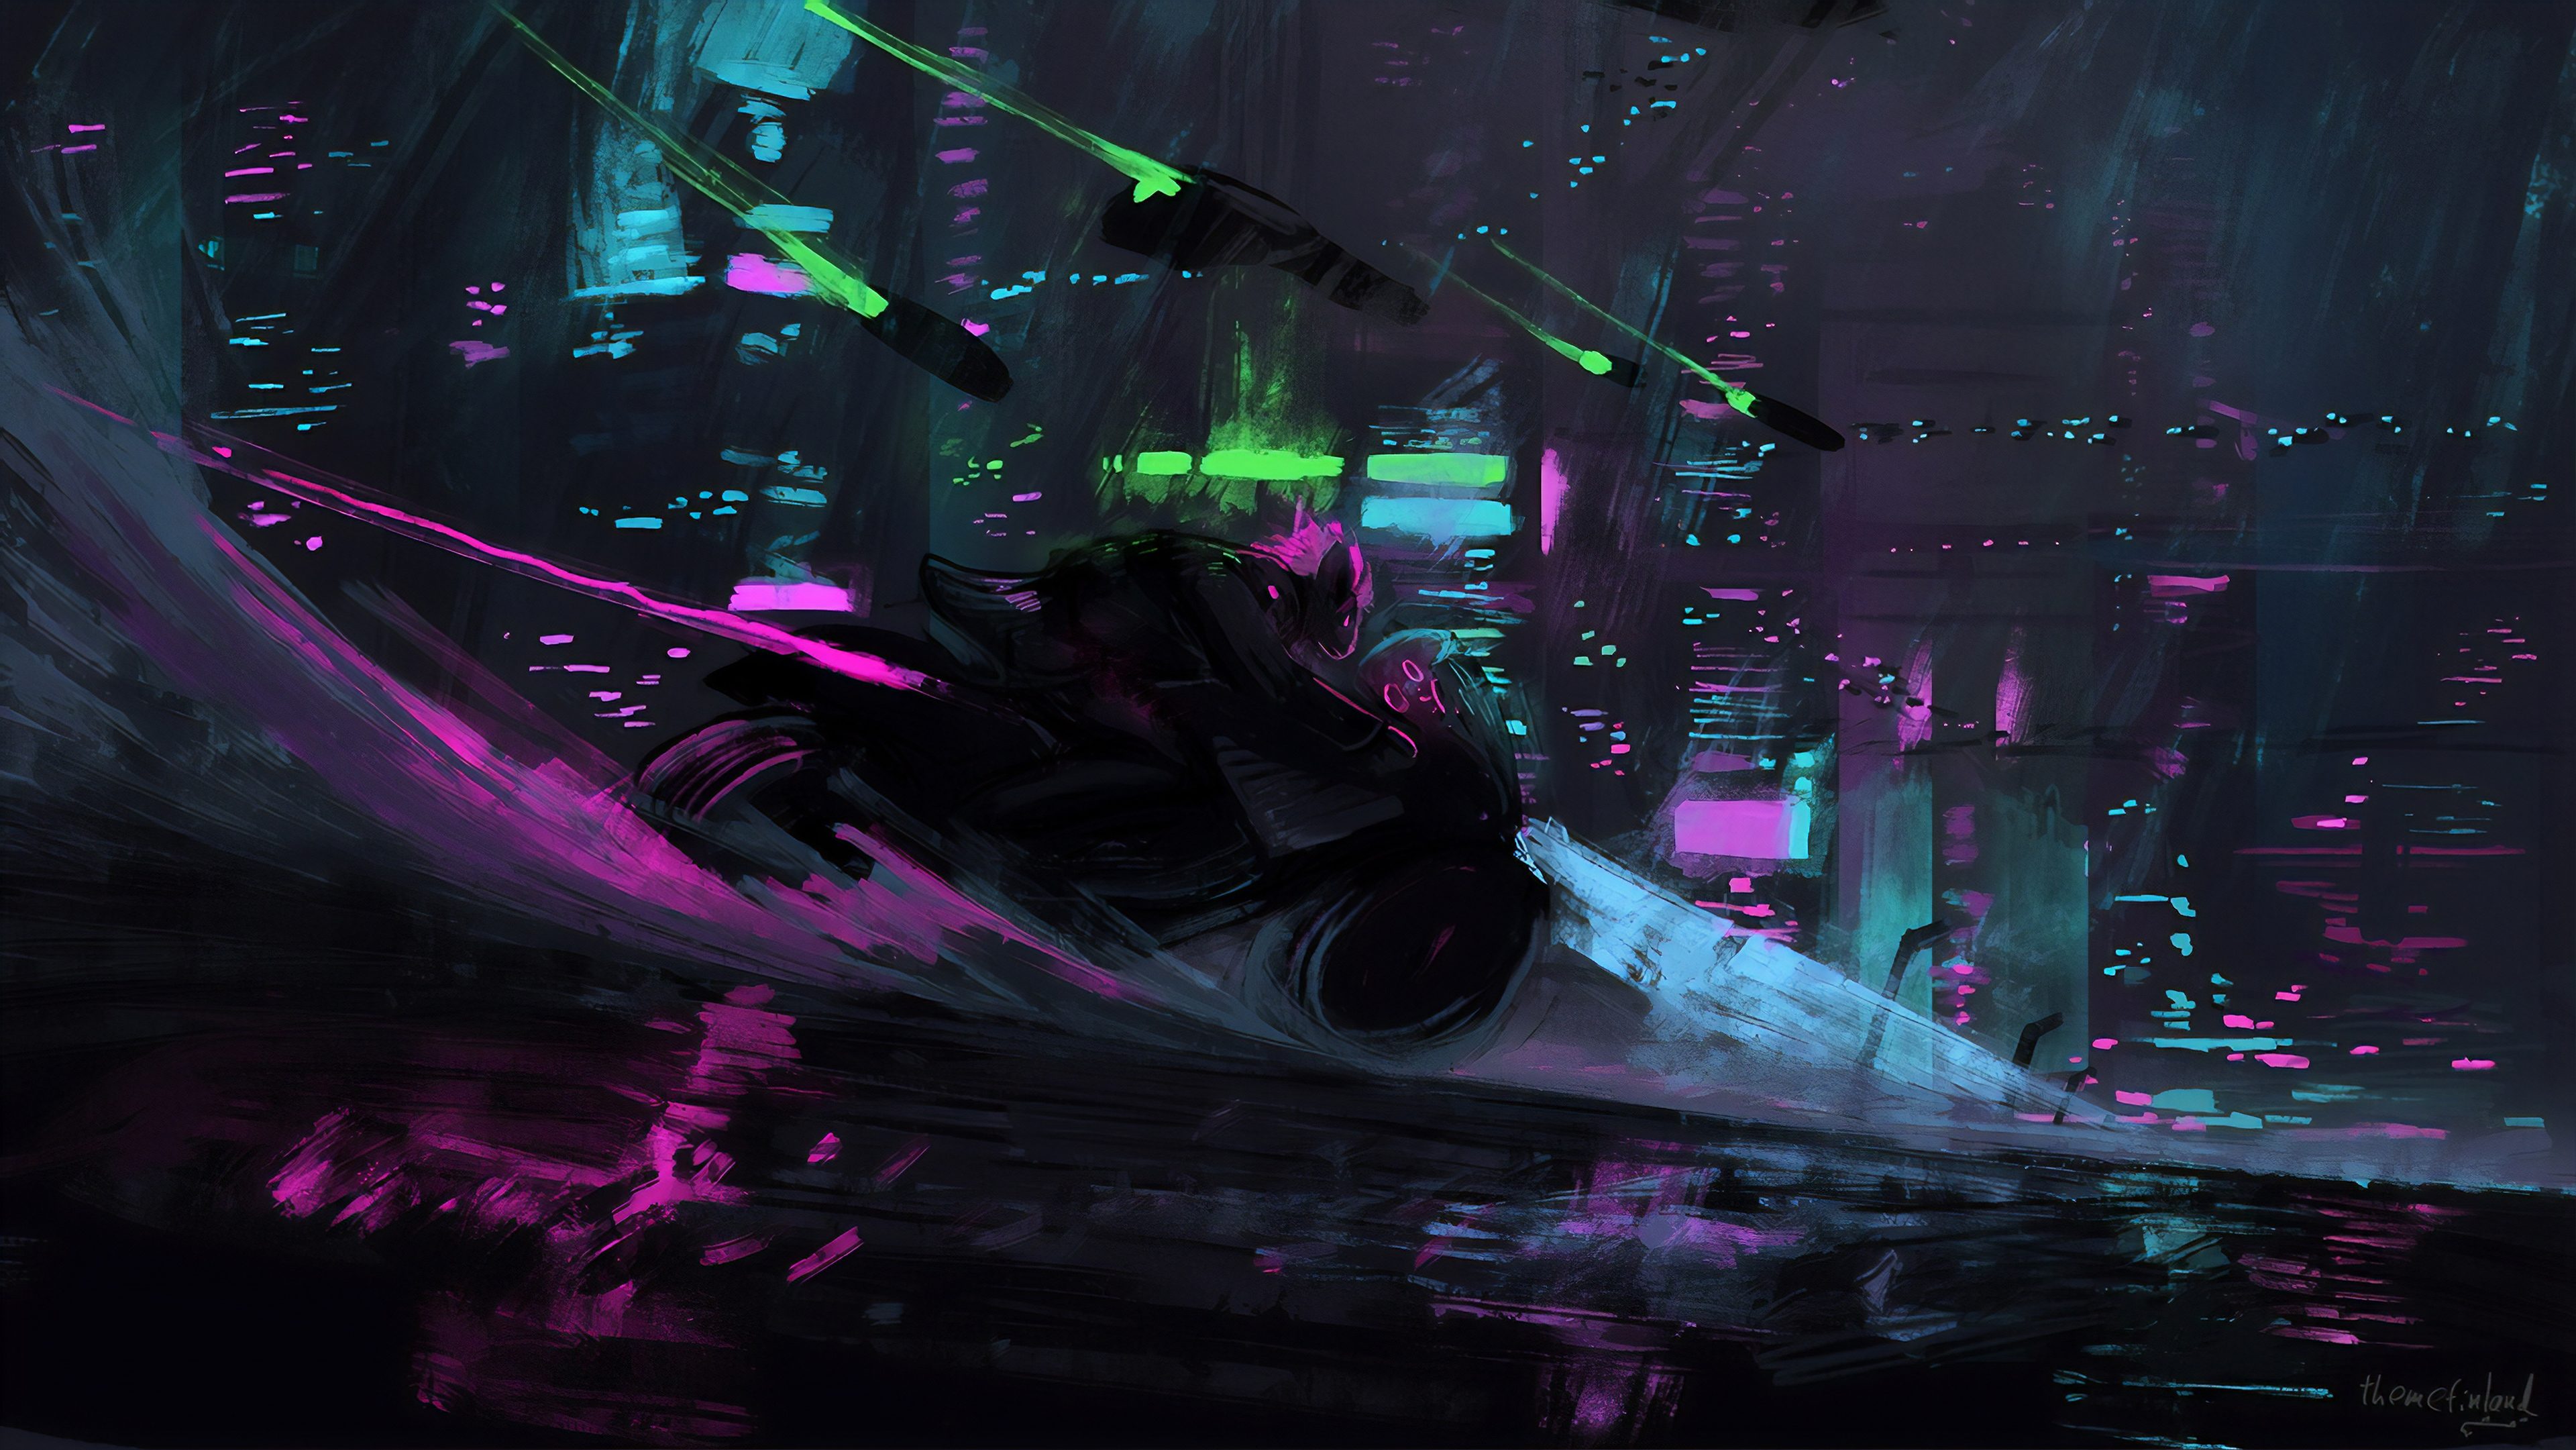 General 3840x2161 digital digital art artwork illustration drawing painting digital painting biker bikes motorcycle motorcyclist landscape city futuristic futuristic city cityscape architecture building neon neon lights city lights cyan blue purple pink dark colorful highway rain water rats science fiction spaceship cyber cyber city cyberpunk Dark Cyberpunk